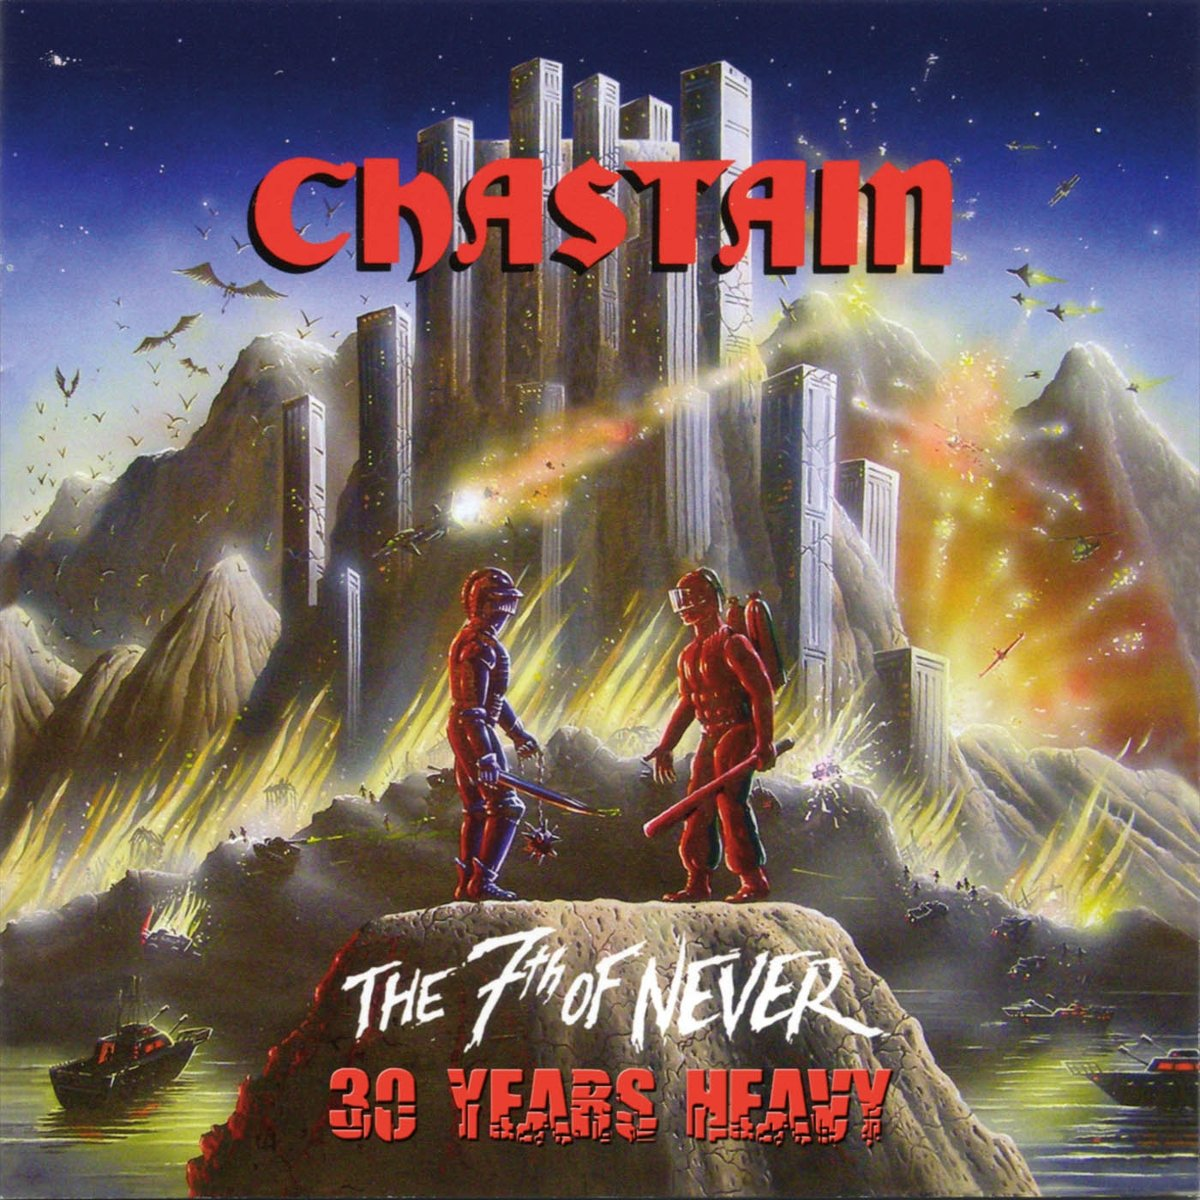 Vinilo : Chastain - 7th Of Never 30 Years Heavy (United Kingdom - Import)